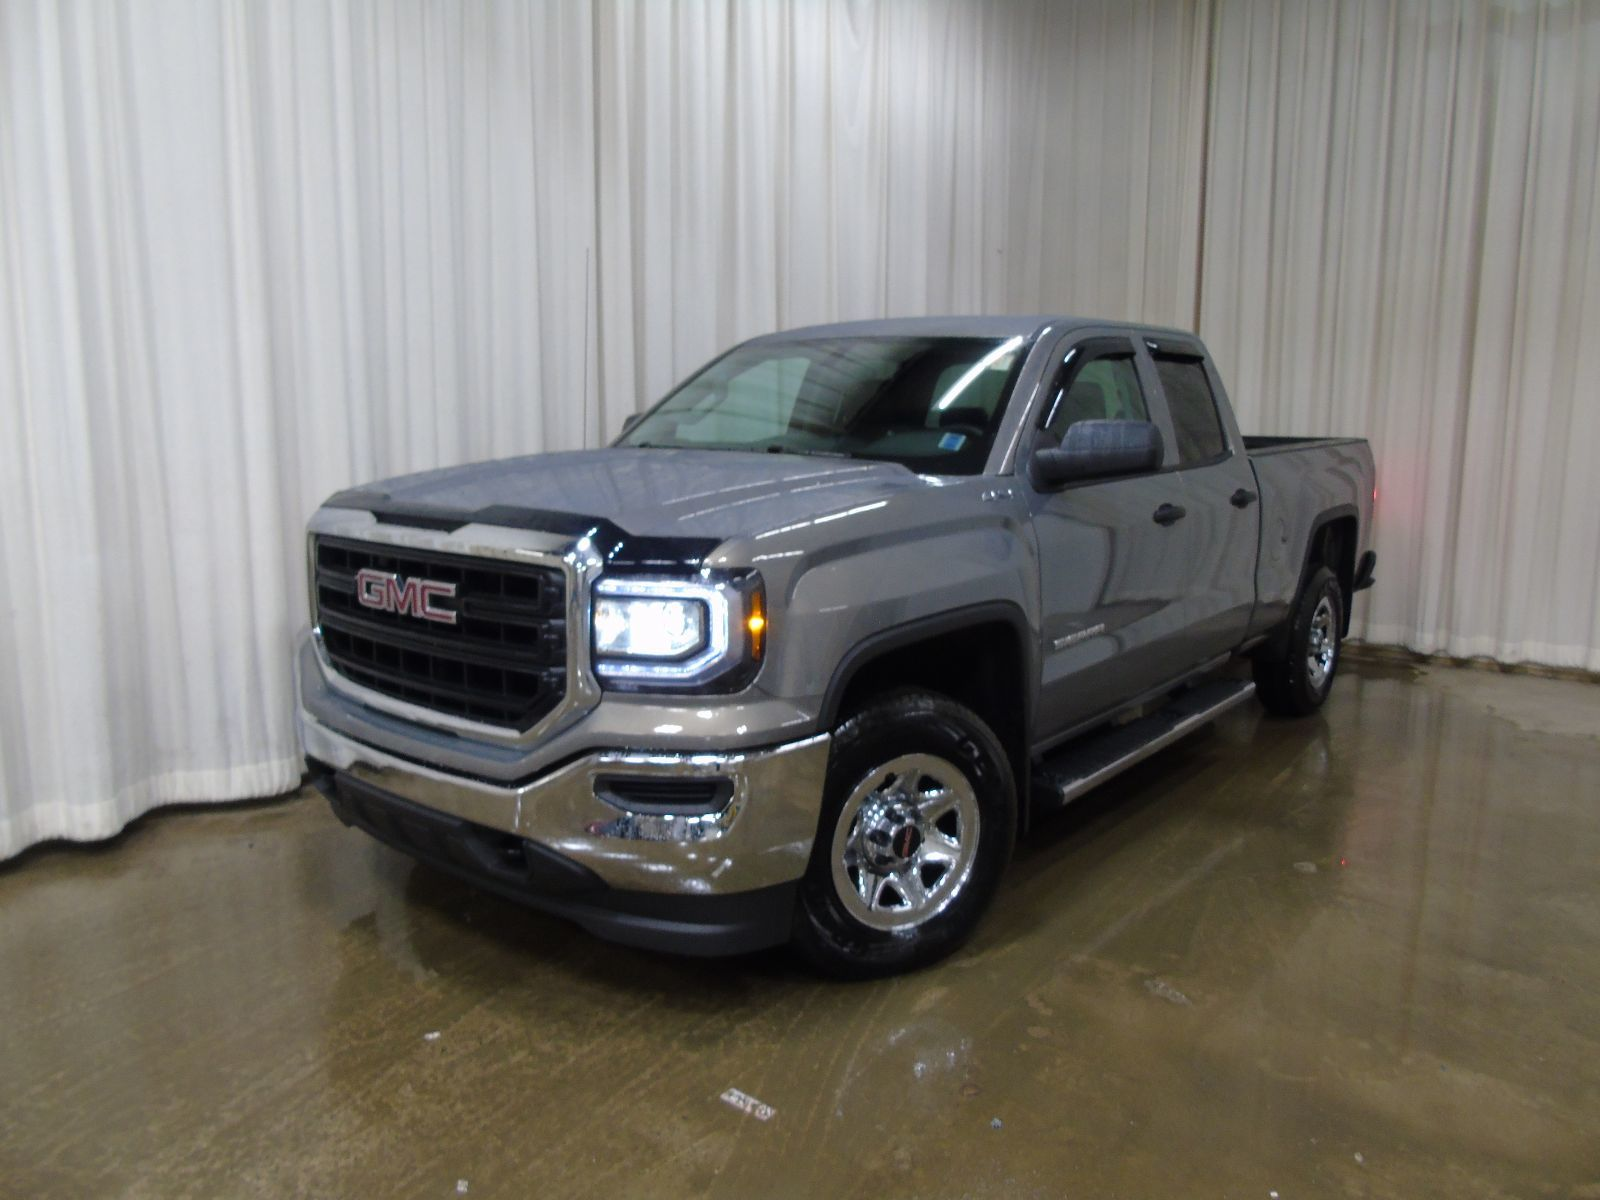 new 2017 gmc sierra 1500 5 3l 8 cyl automatic 4x4 extended. Black Bedroom Furniture Sets. Home Design Ideas